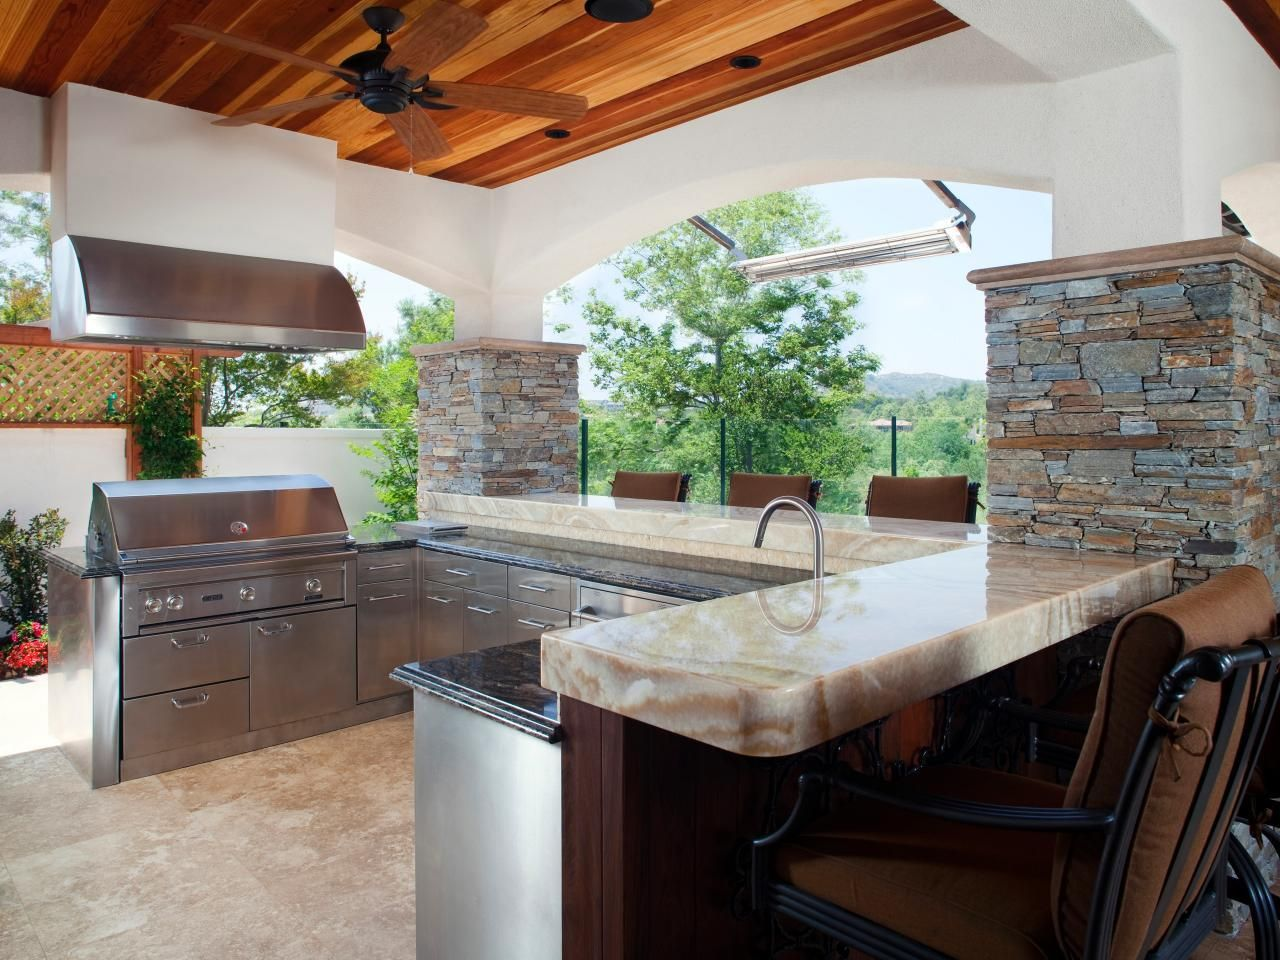 Decoration Style, The Best Style Design Idea Also Sink Faucet Then Beautiful Innovation Design Idea Also Fan Design Idea Also Best Decorating Idea: The Interesting Kitchen Room Design By The Wonderful Of Outdoor Bbq Ideas